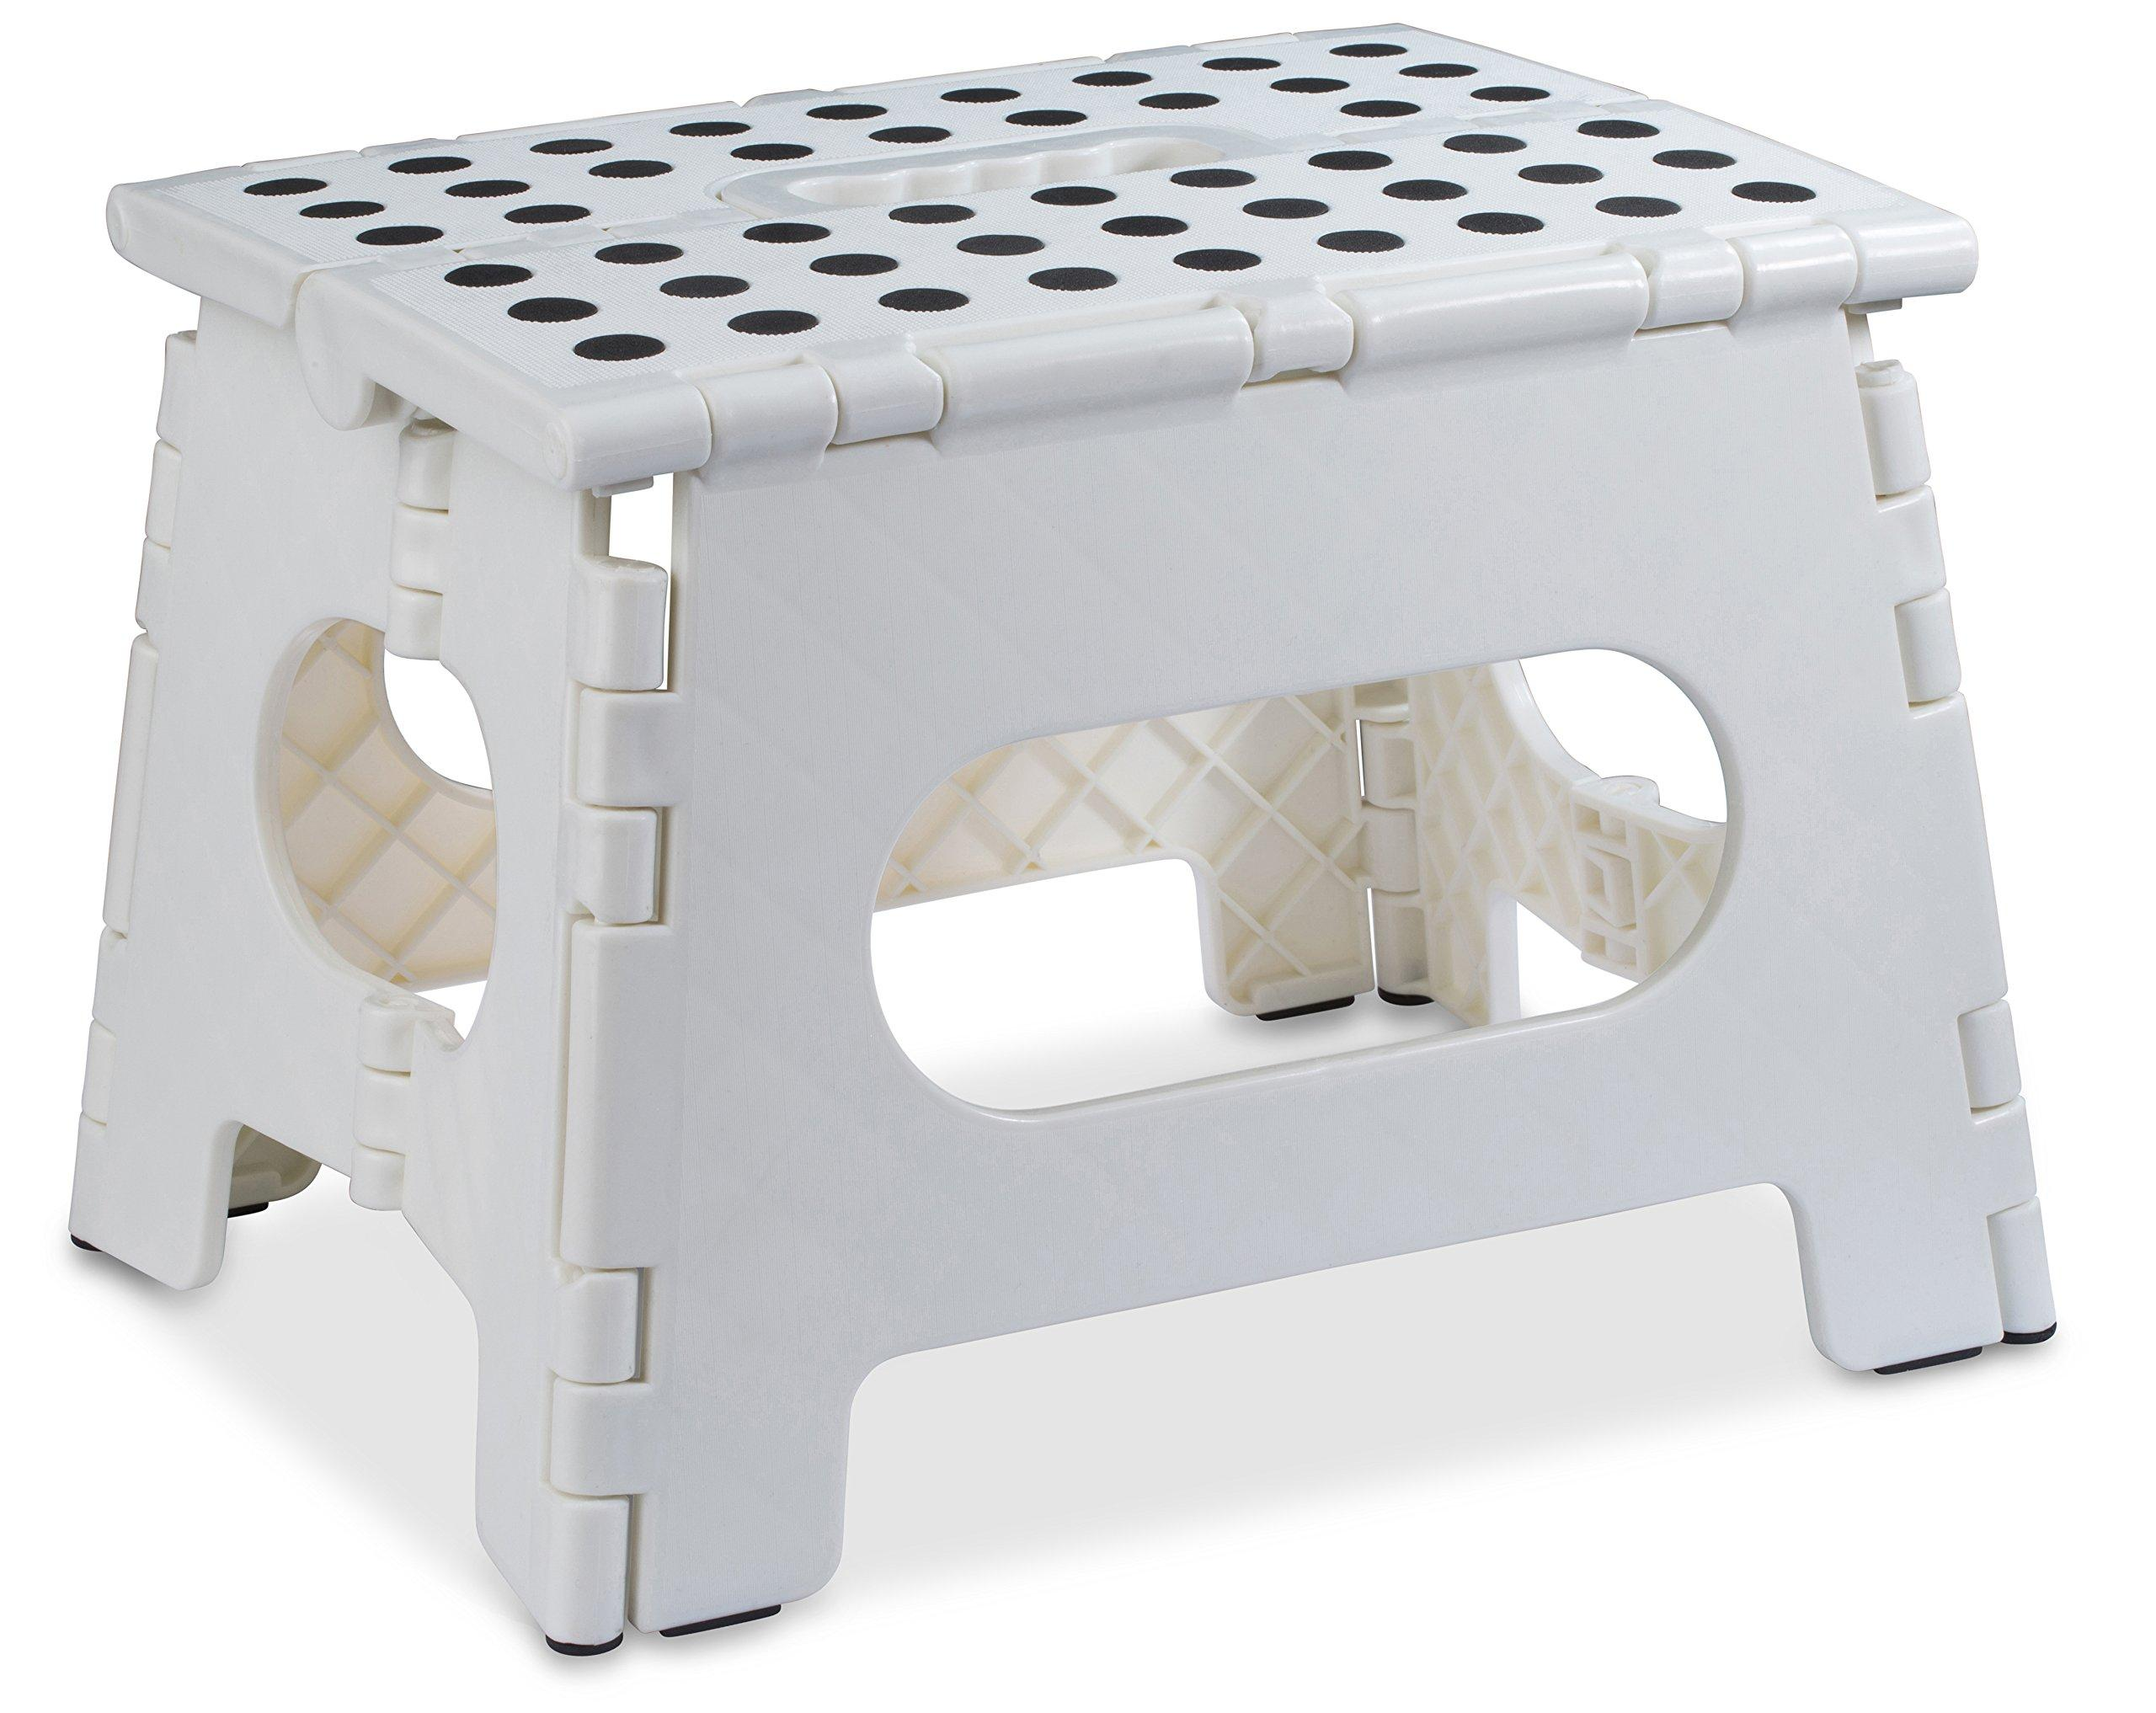 Fine Folding Step Stool The Lightweight Step Stool Is Sturdy Enough To Support Lamtechconsult Wood Chair Design Ideas Lamtechconsultcom